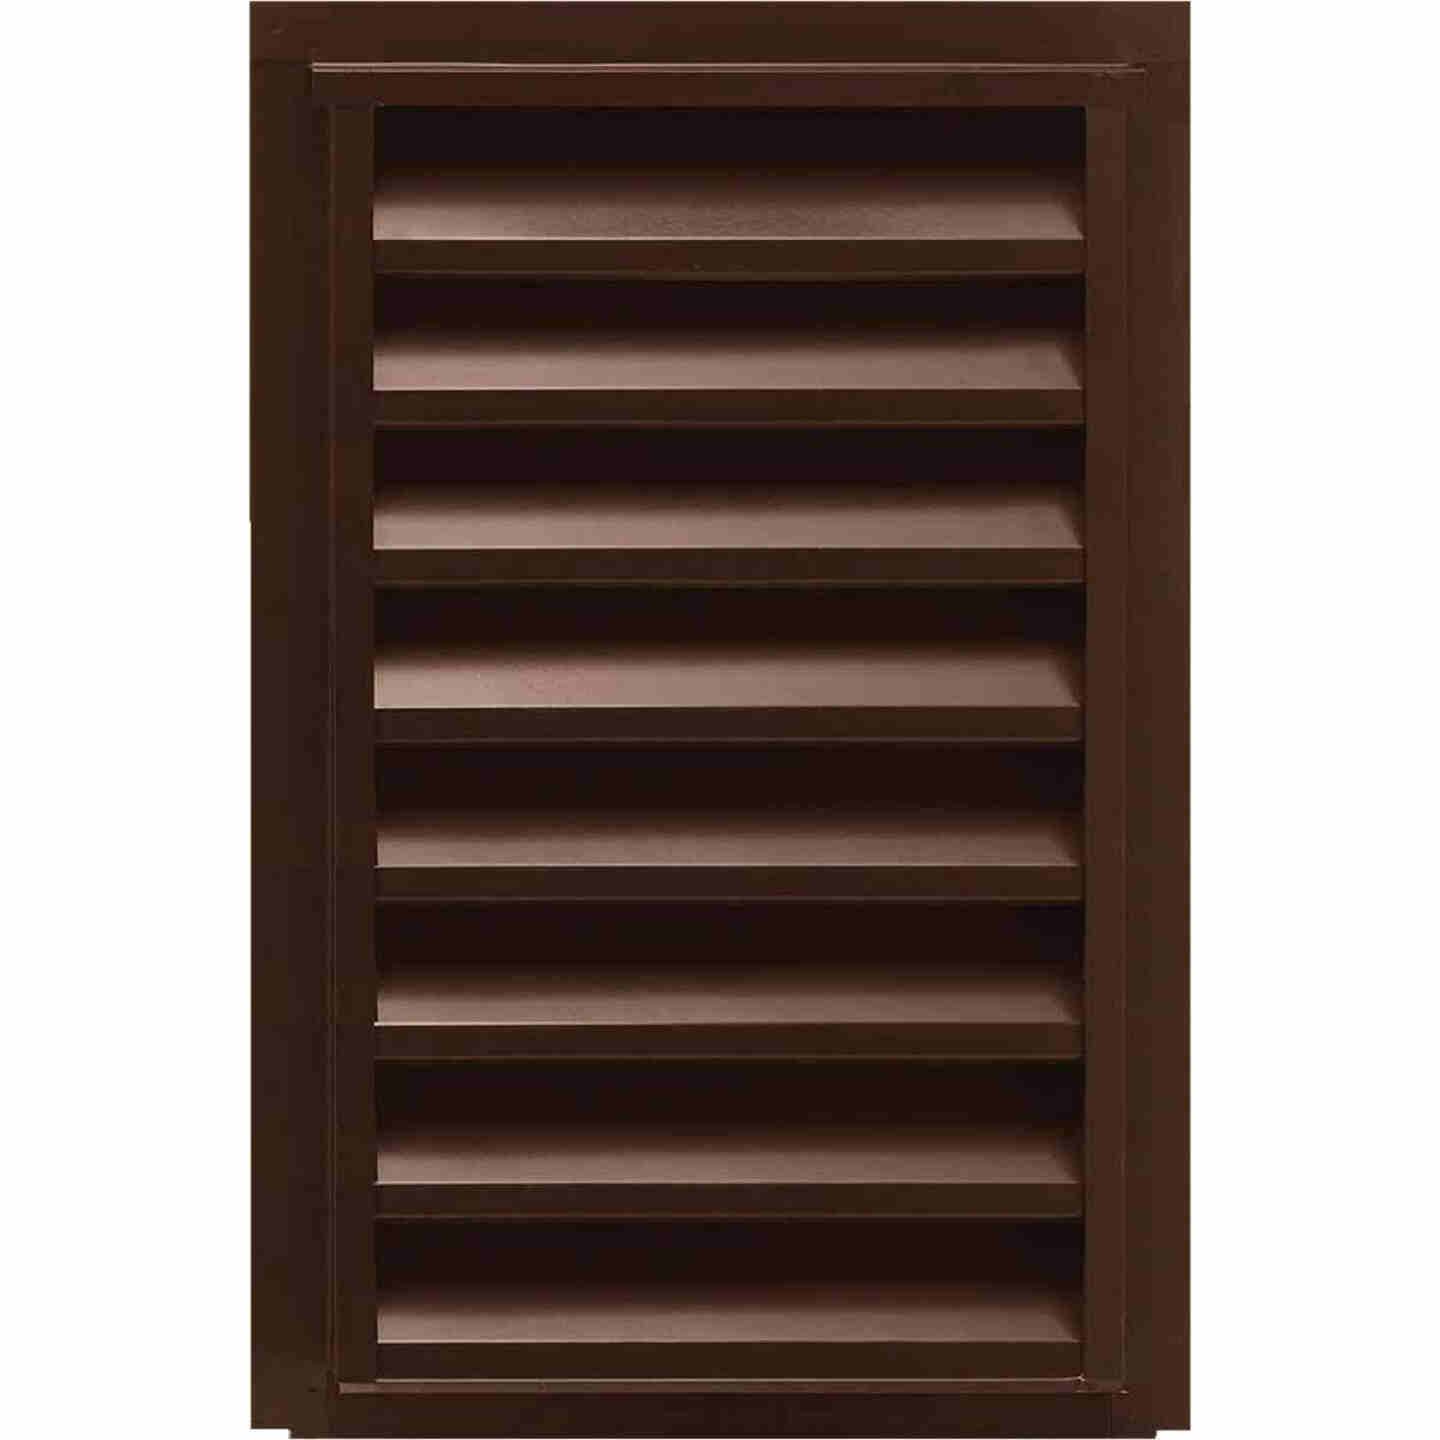 "NorWesco 14"" x 24"" Rectangular Brown Gable Attic Vent Image 1"